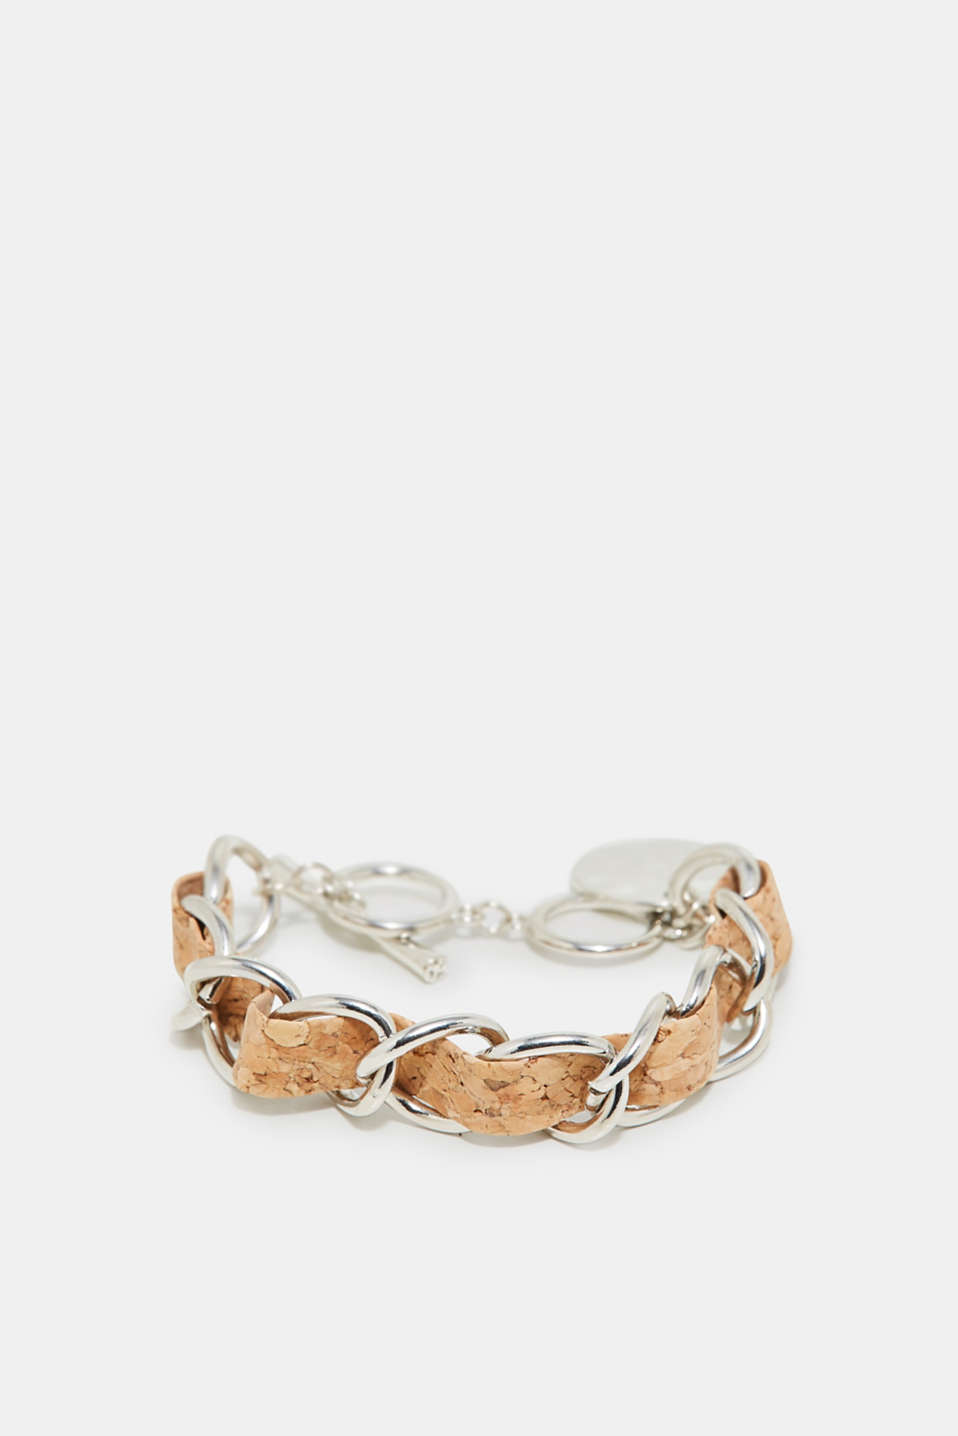 Esprit - Link bracelet with cork